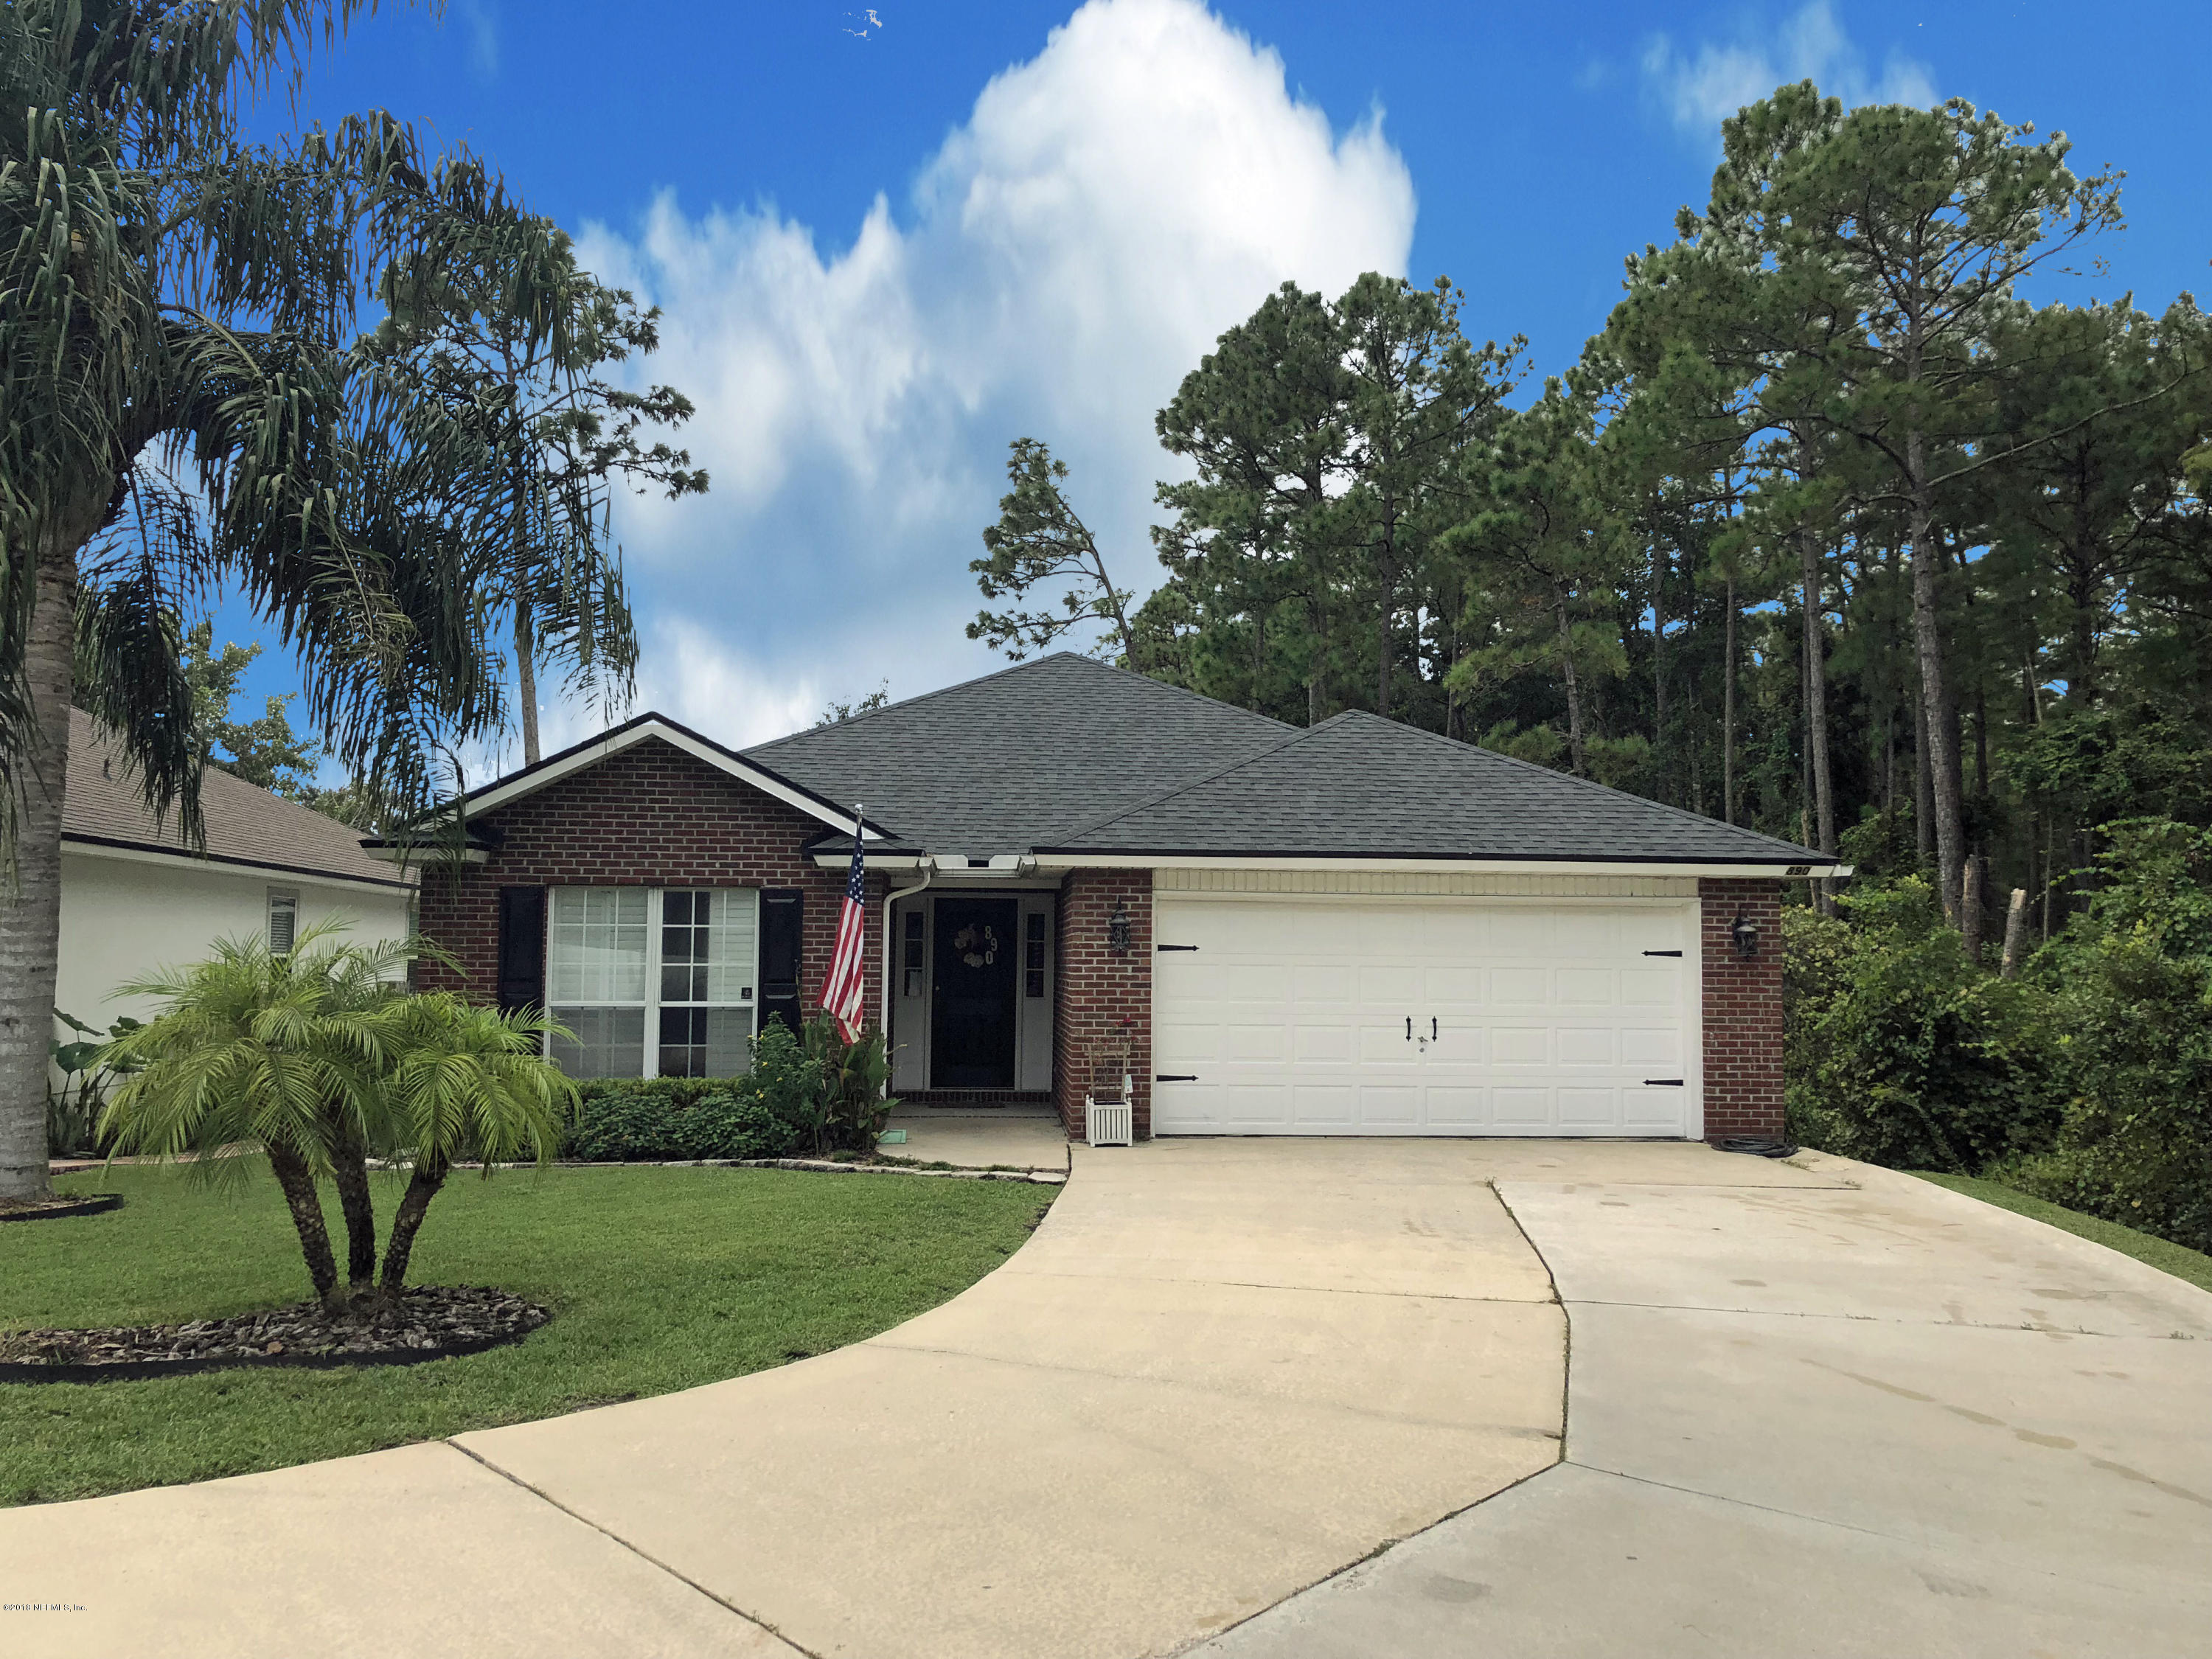 890 LILAC, ST JOHNS, FLORIDA 32259, 4 Bedrooms Bedrooms, ,2 BathroomsBathrooms,Residential - single family,For sale,LILAC,960460